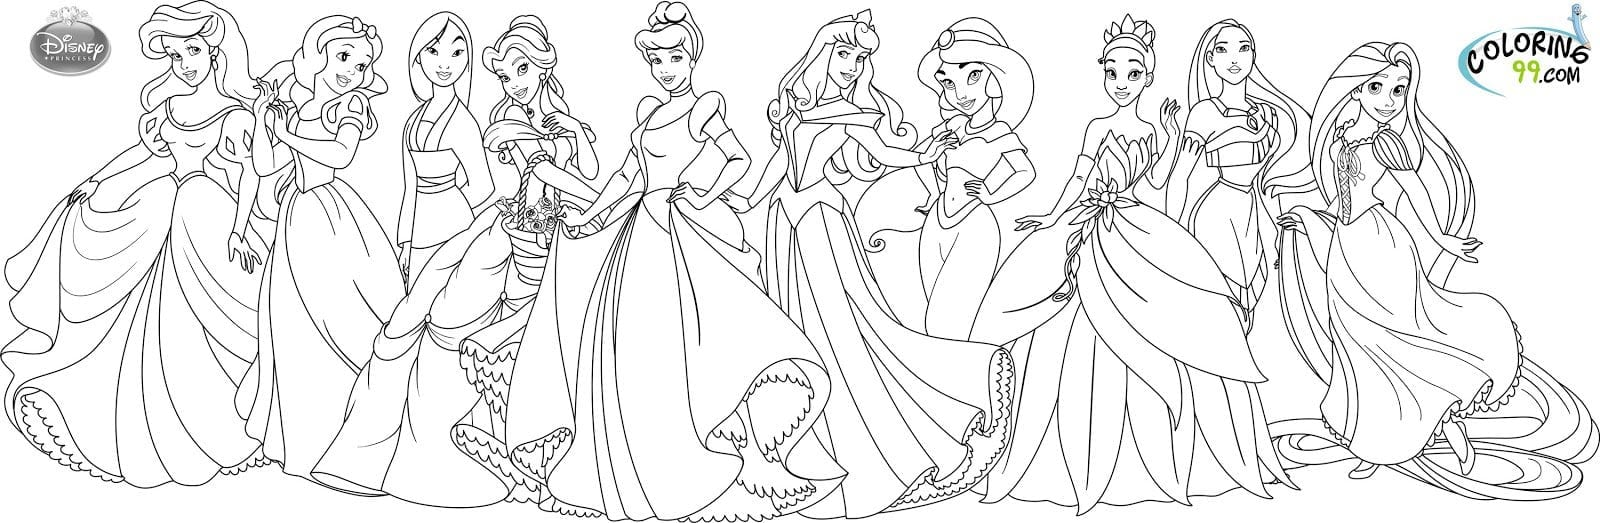 Best Best Disney Princess Coloring Pages Free Download Printable